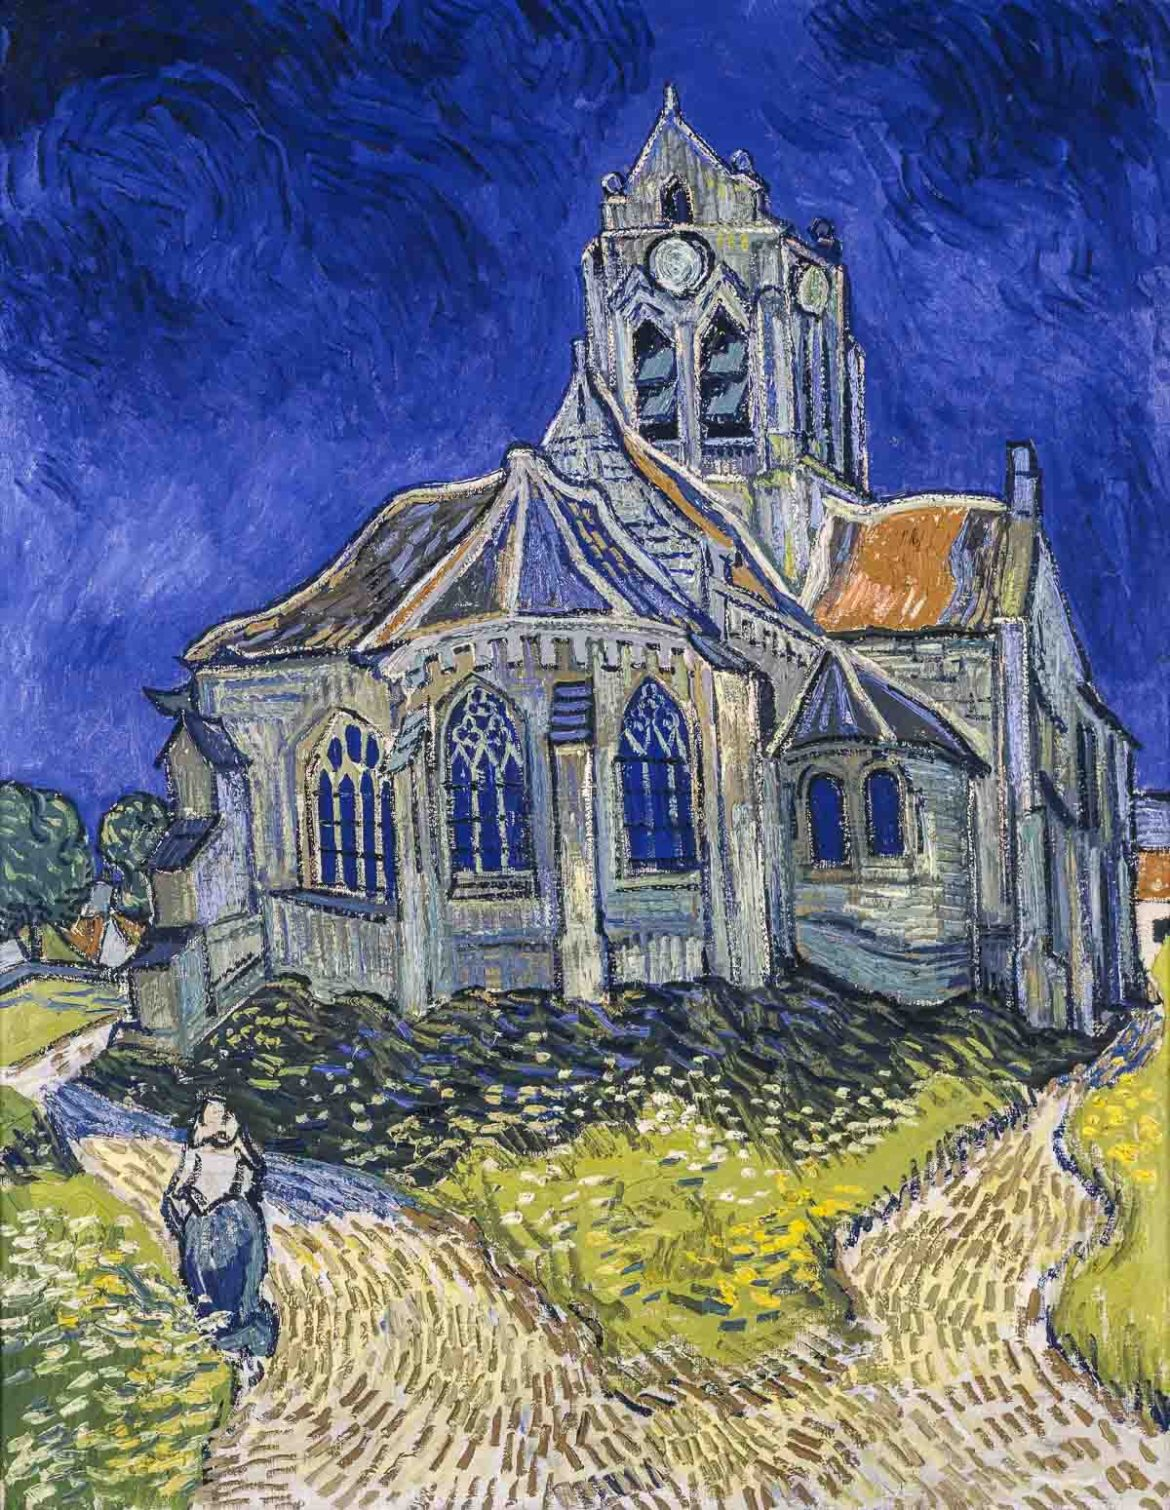 A Van Gogh painting of the church in Auvers-sur-Oise.